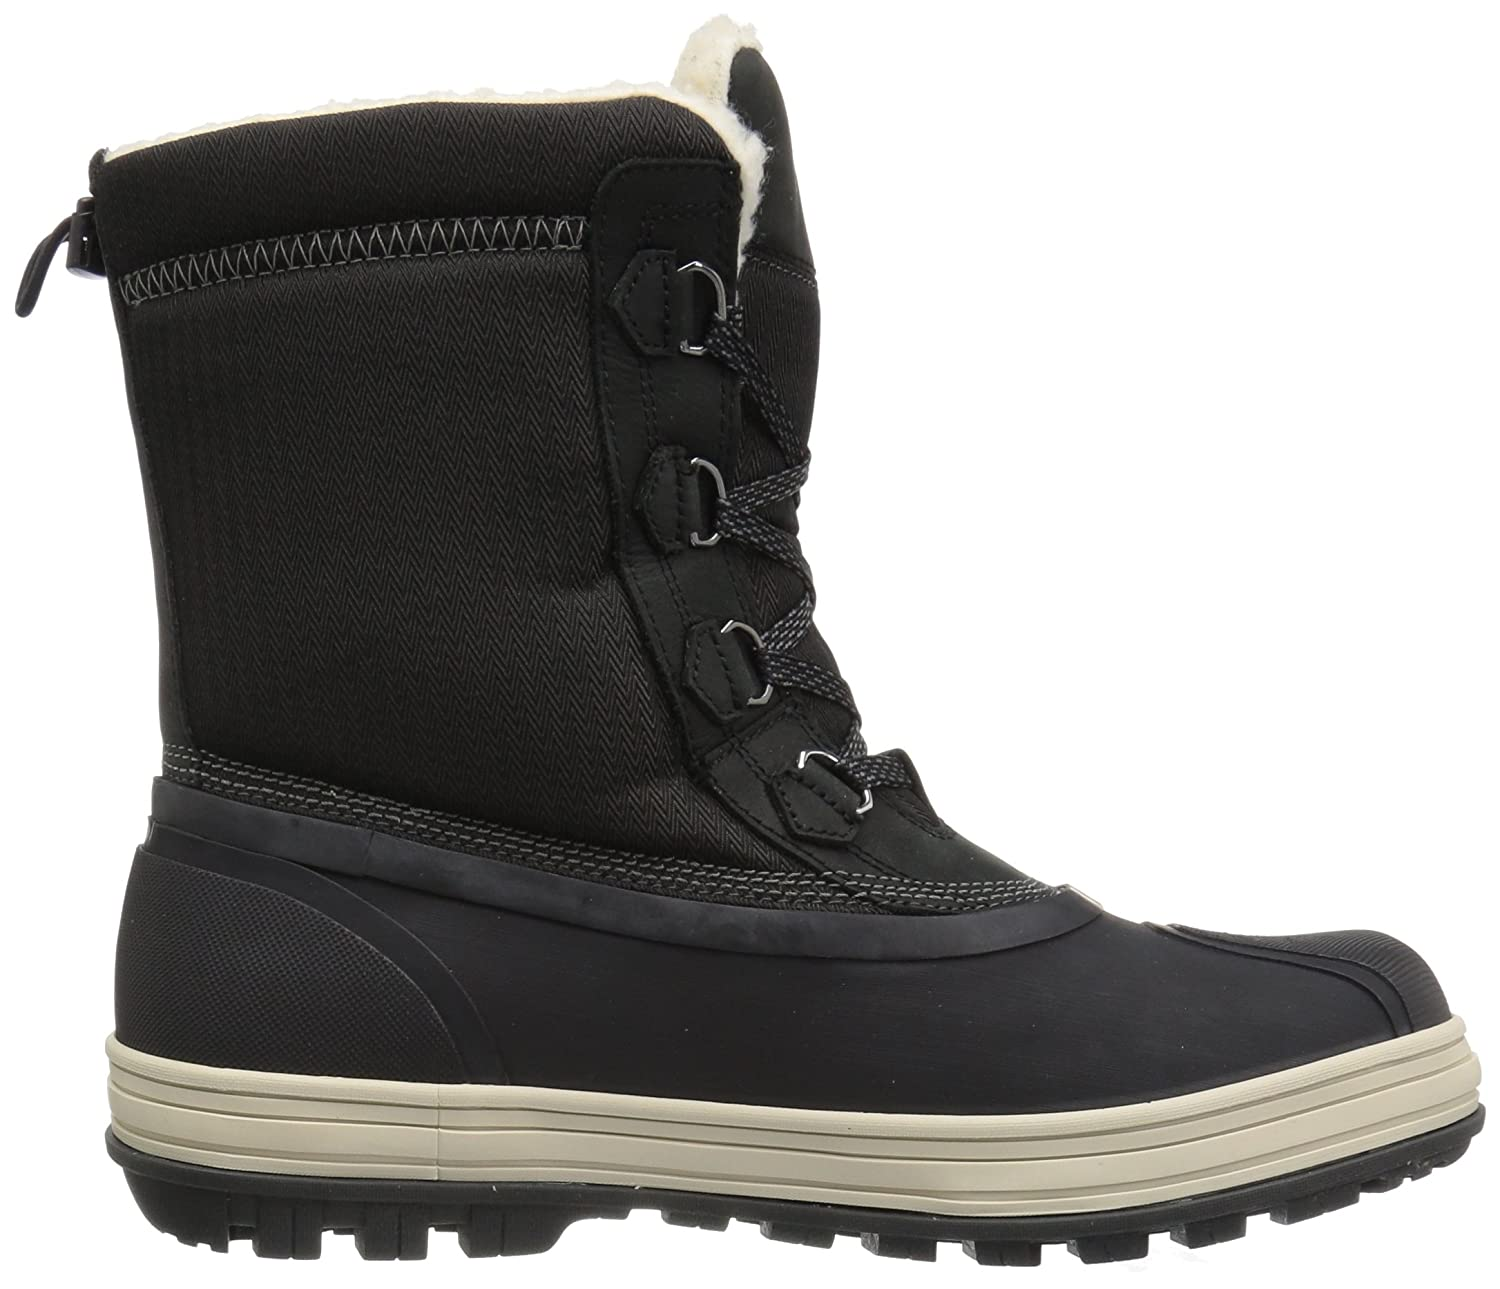 Helly Hansen Women's Framheim Snow Boot B01L0ALAZW 7 B(M) US|Black/Charcoal